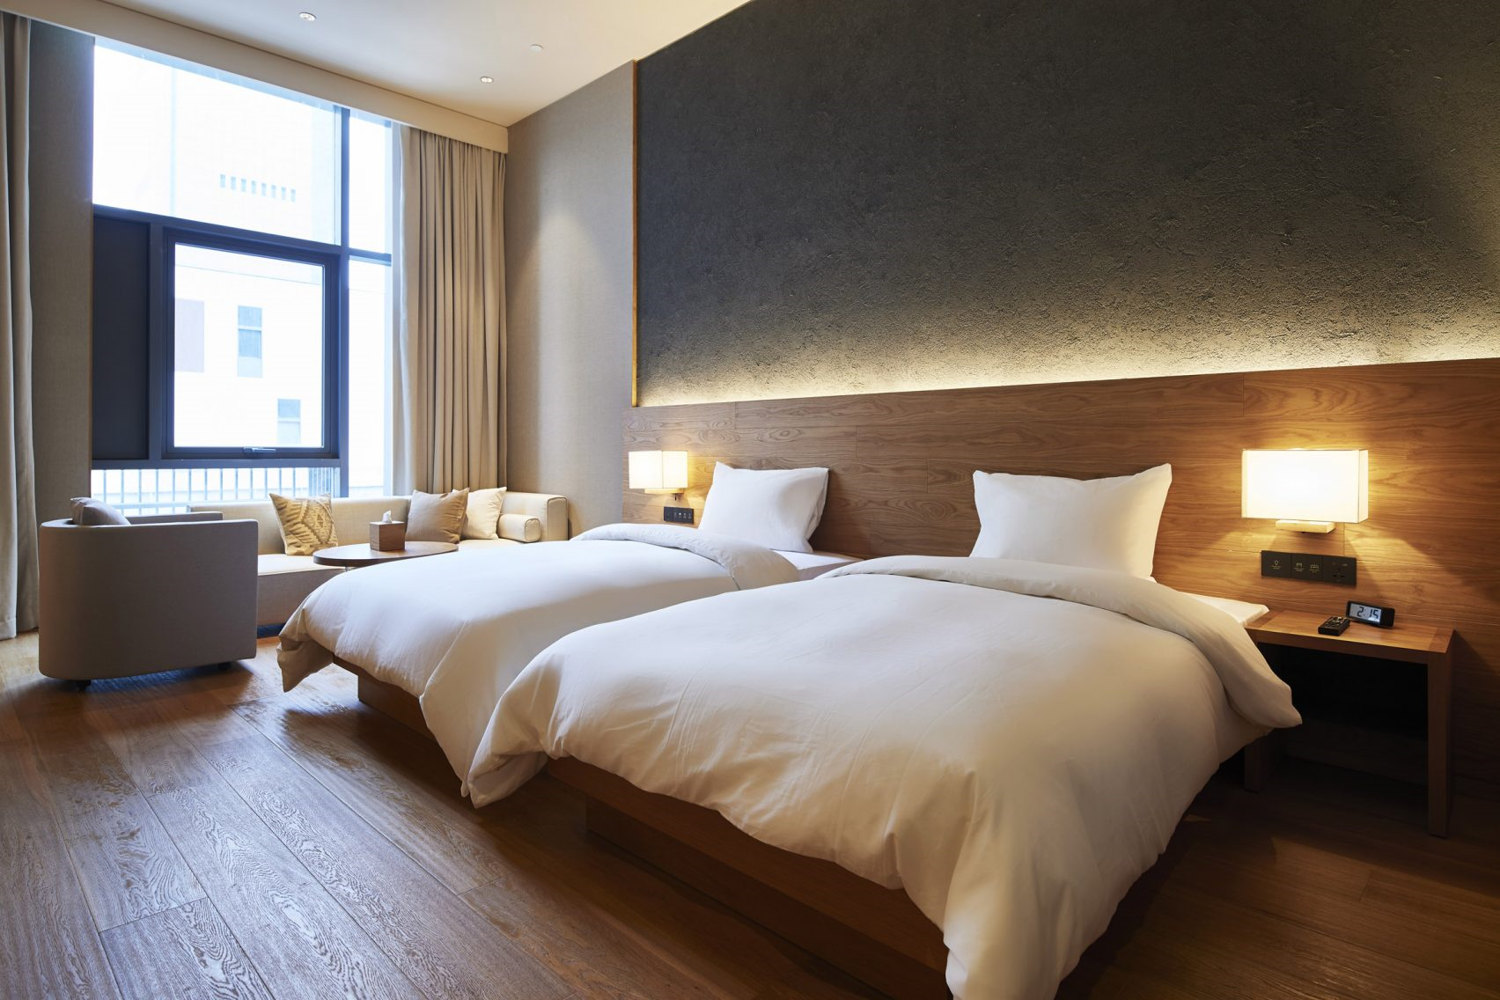 Hotel Interior Design Hotel Room Design Trends What Travellers Want In Their